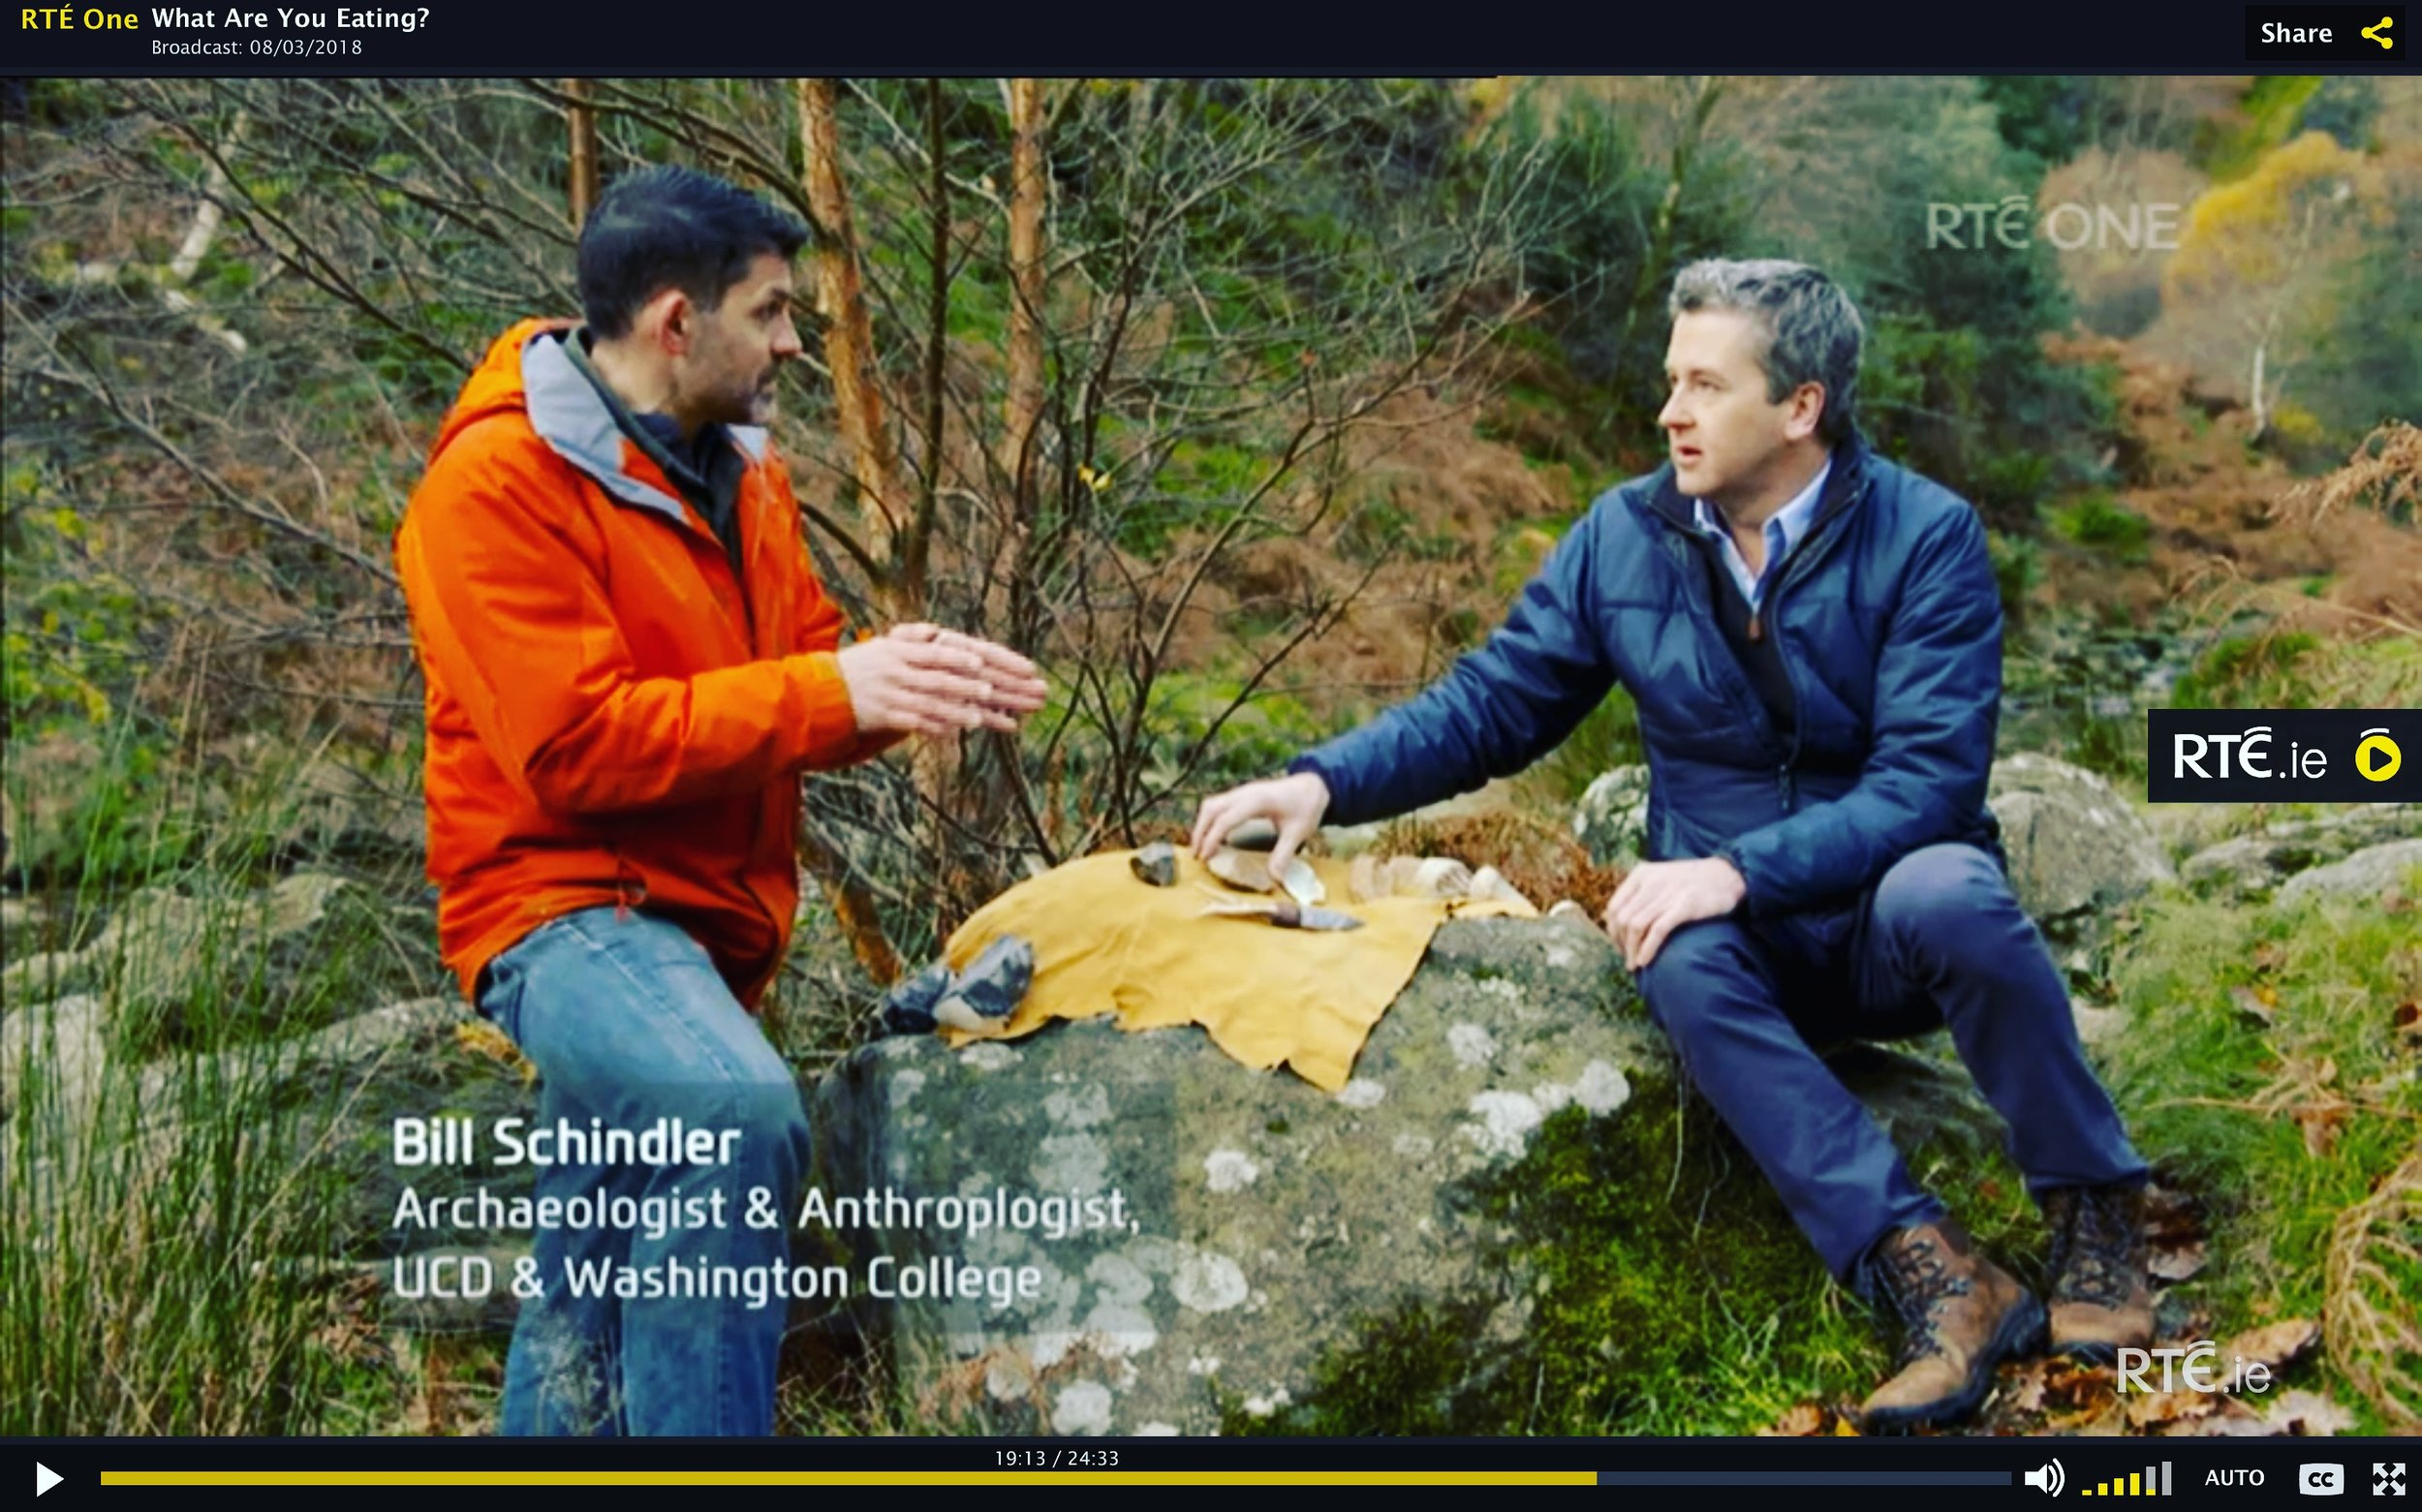 Check out Dr. Schindler on RTE1's  What Are You Eating  aired on March 8th